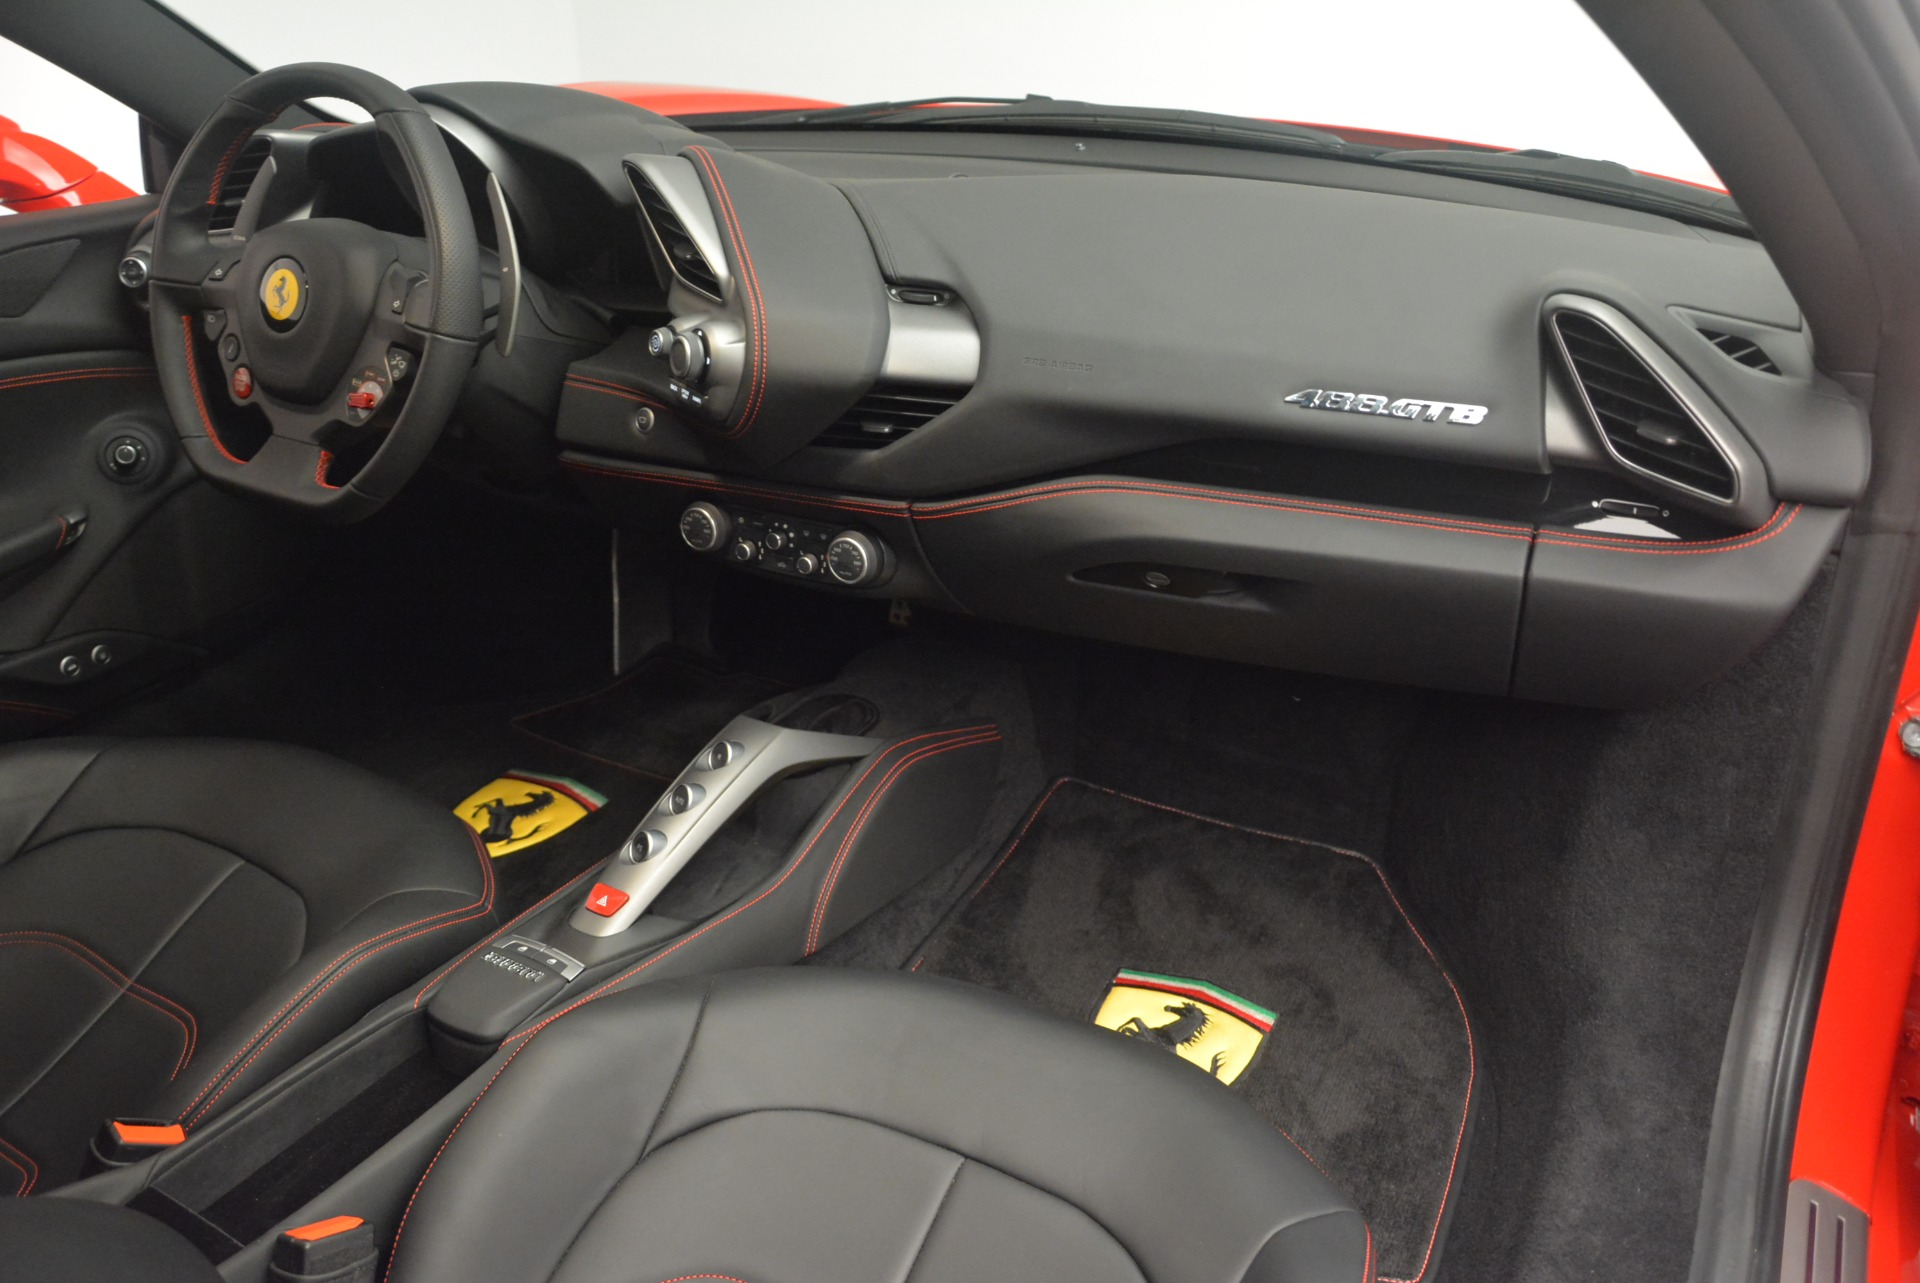 Used 2017 Ferrari 488 GTB  For Sale In Greenwich, CT. Alfa Romeo of Greenwich, 4488 2365_p17